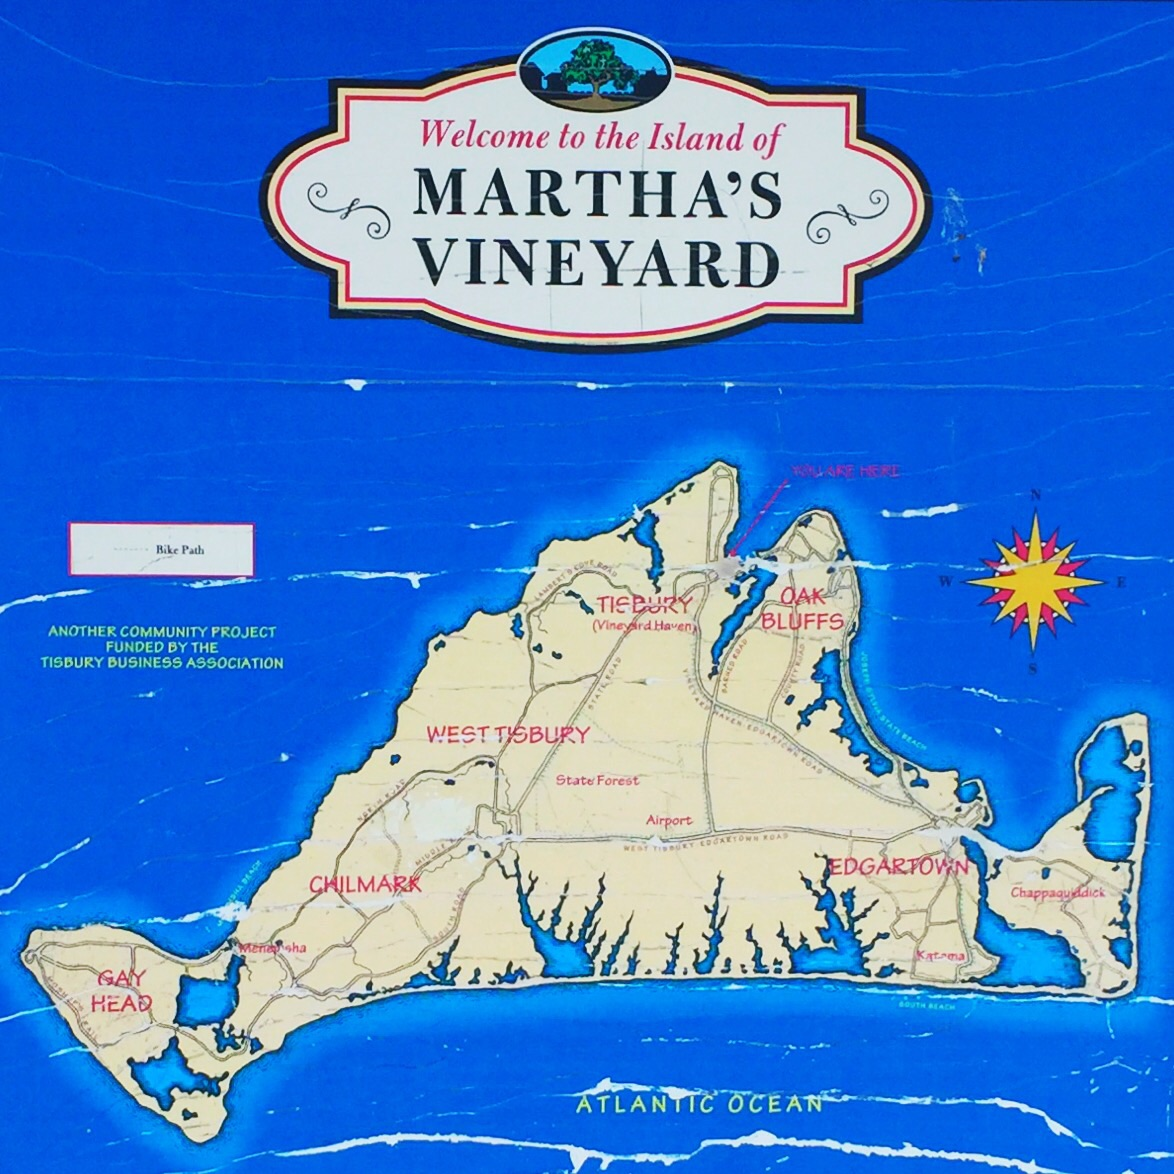 A map of the island.